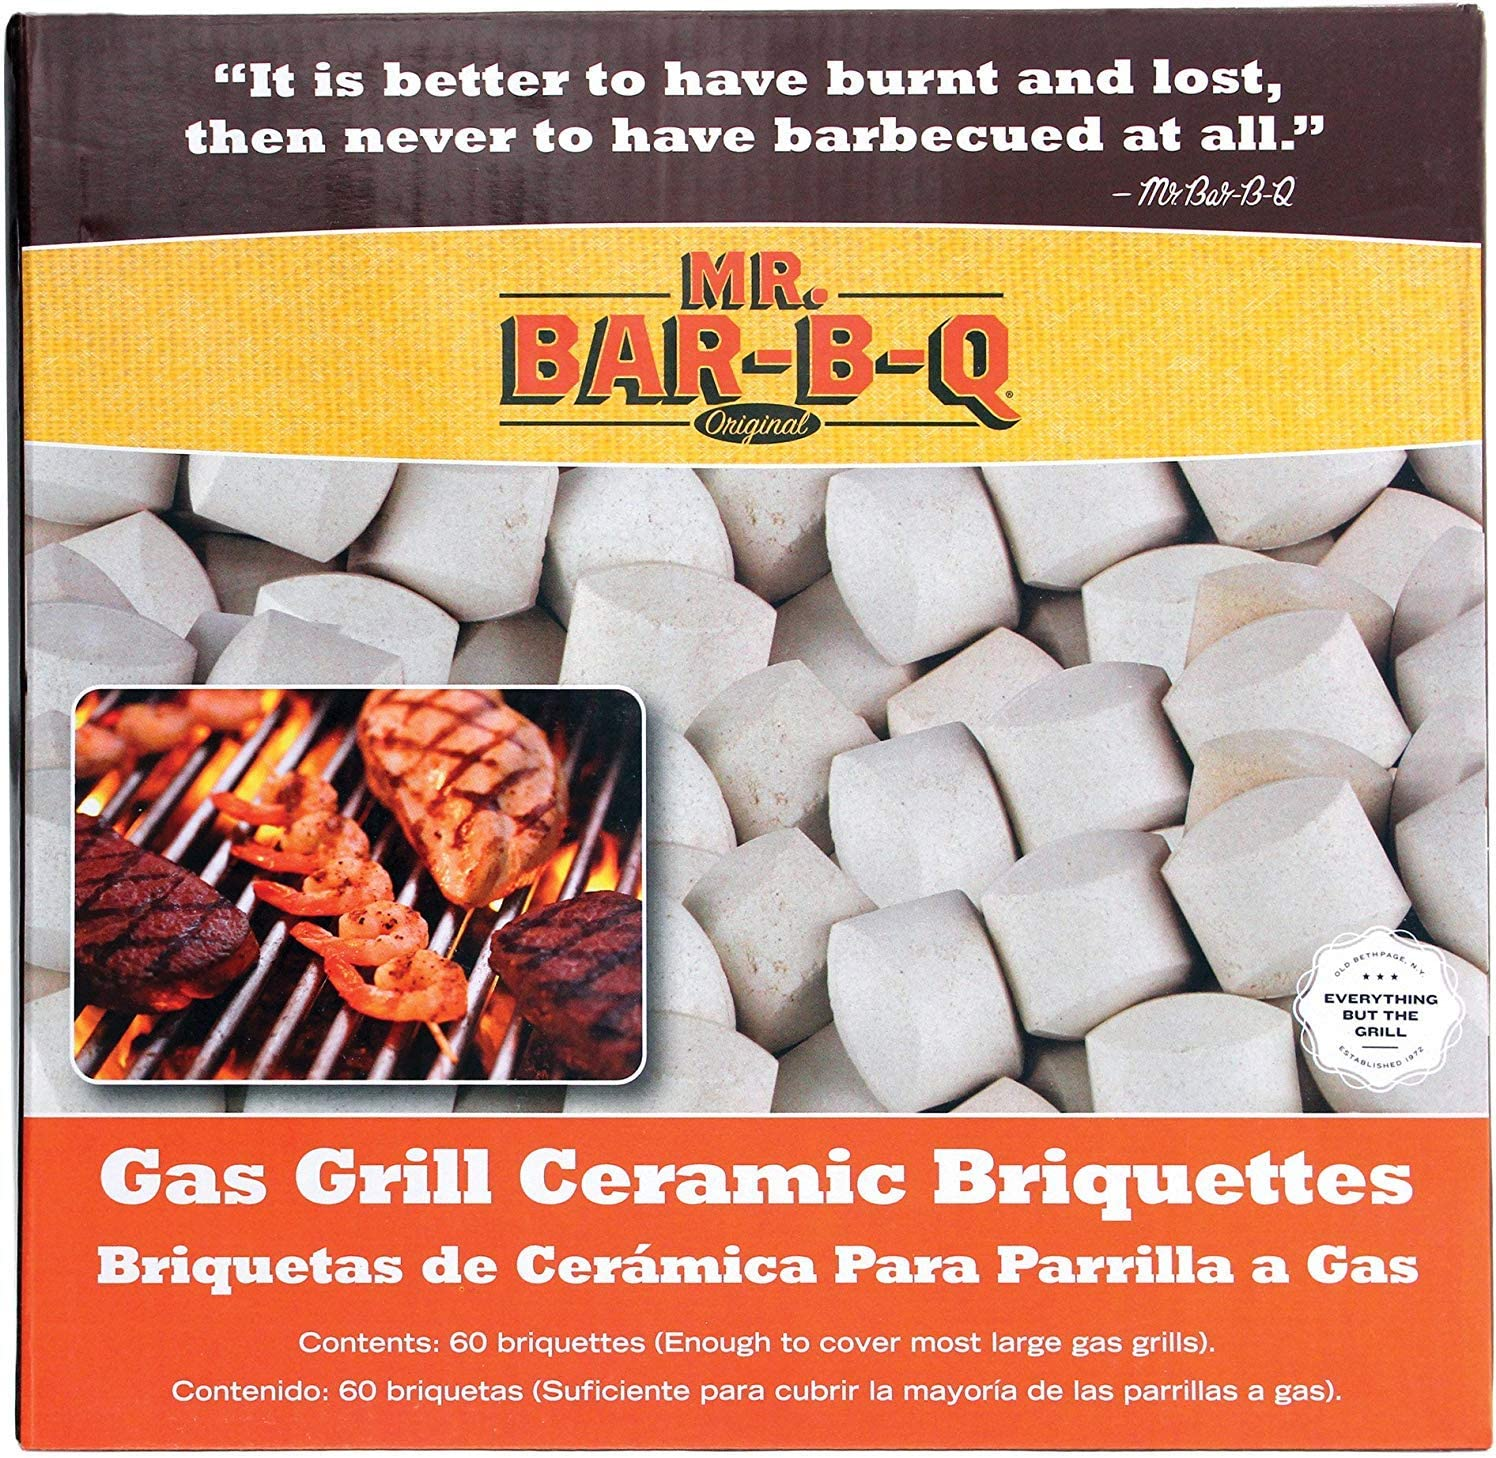 How To Add Ceramic Briquettes To Gas Grill